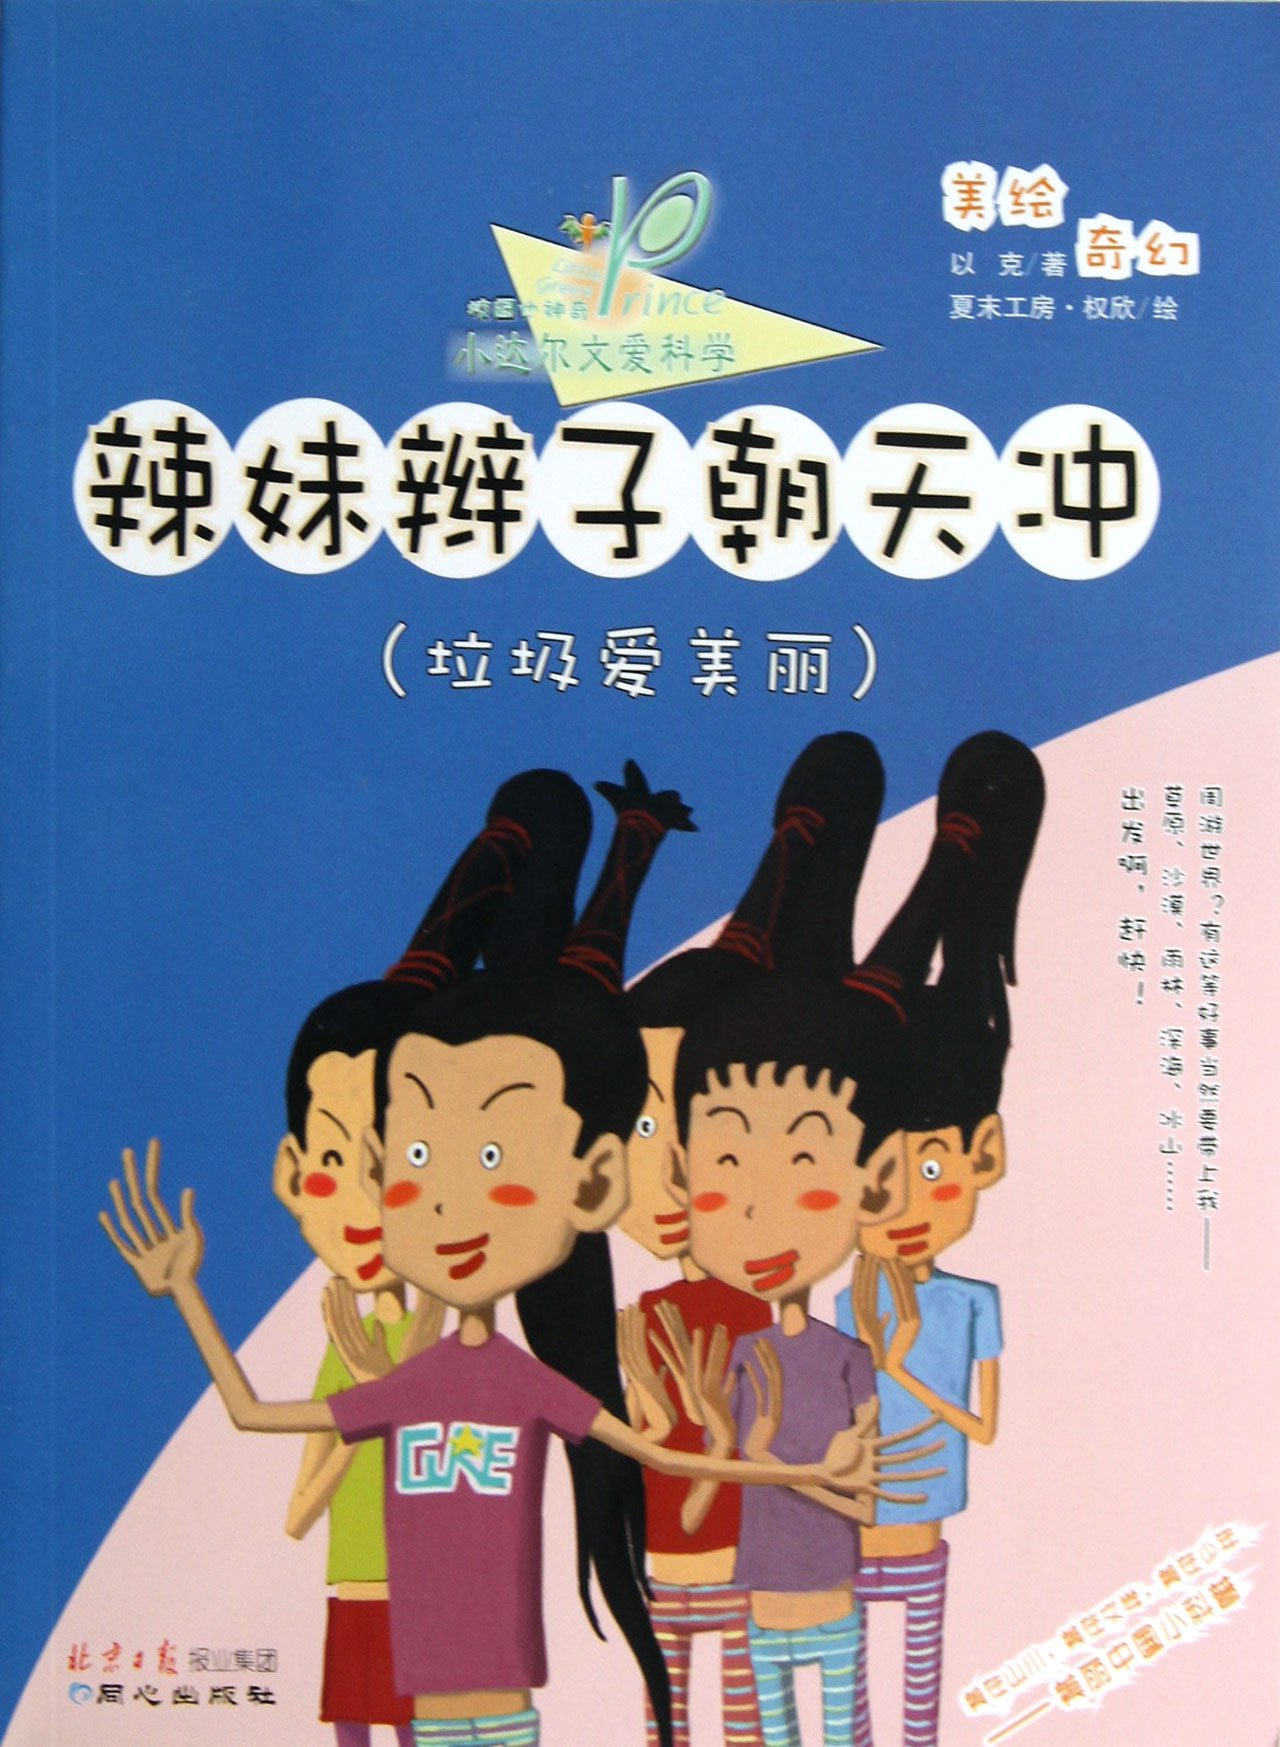 Download Spicy Girls Hair Upward (Rubbish Loves Beauty) (Chinese Edition) pdf